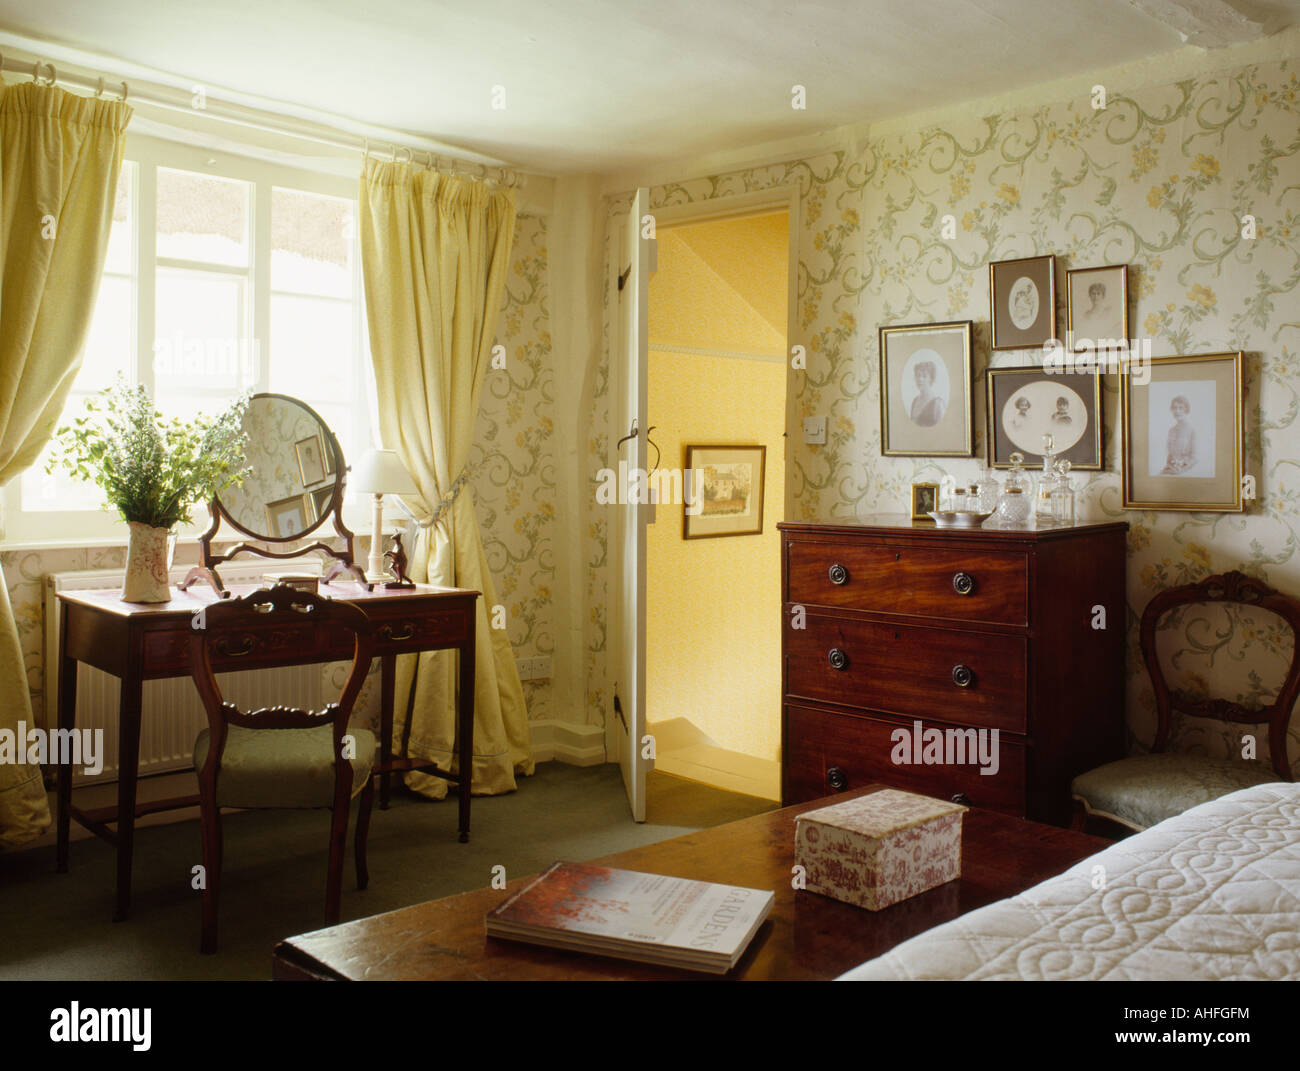 Neutral Wallpaper Bedroom Pastel Yellow Curtains In Traditional Country Bedroom With